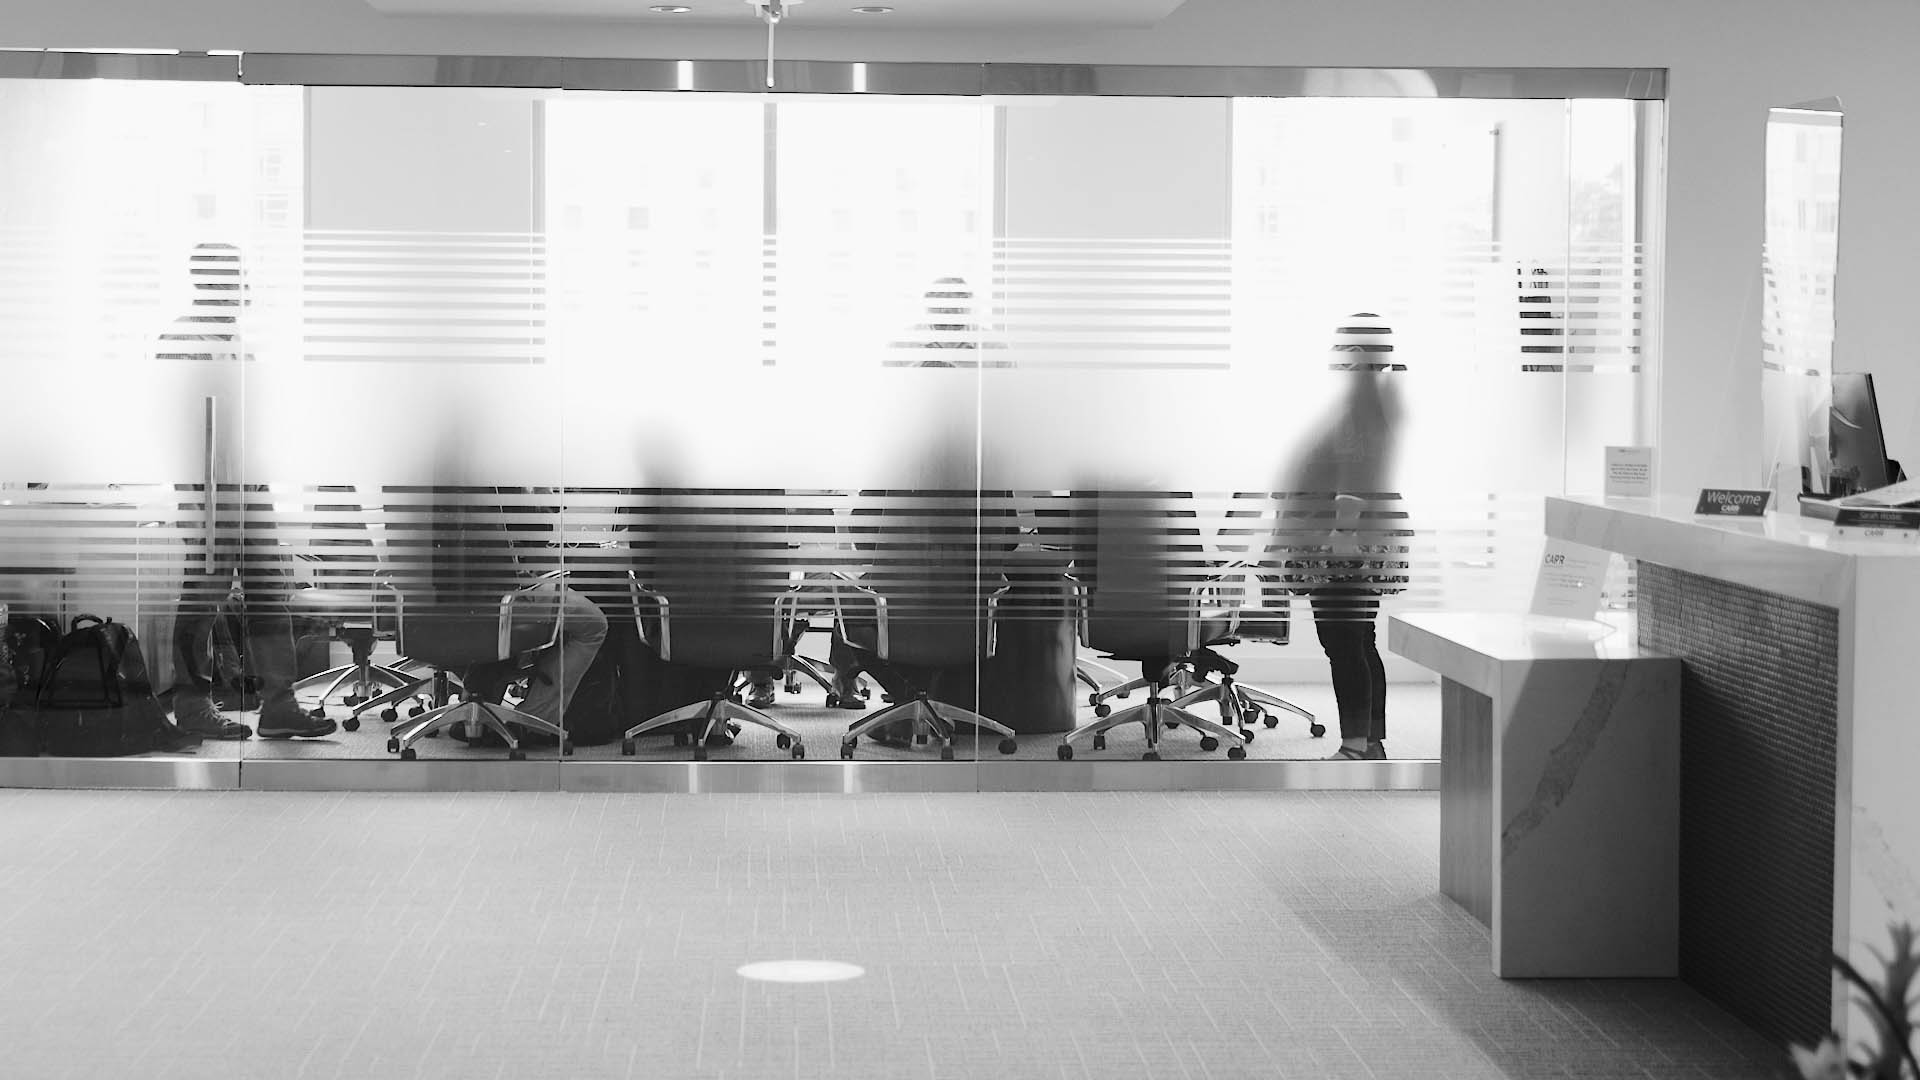 a group of people meeting inside a conference room